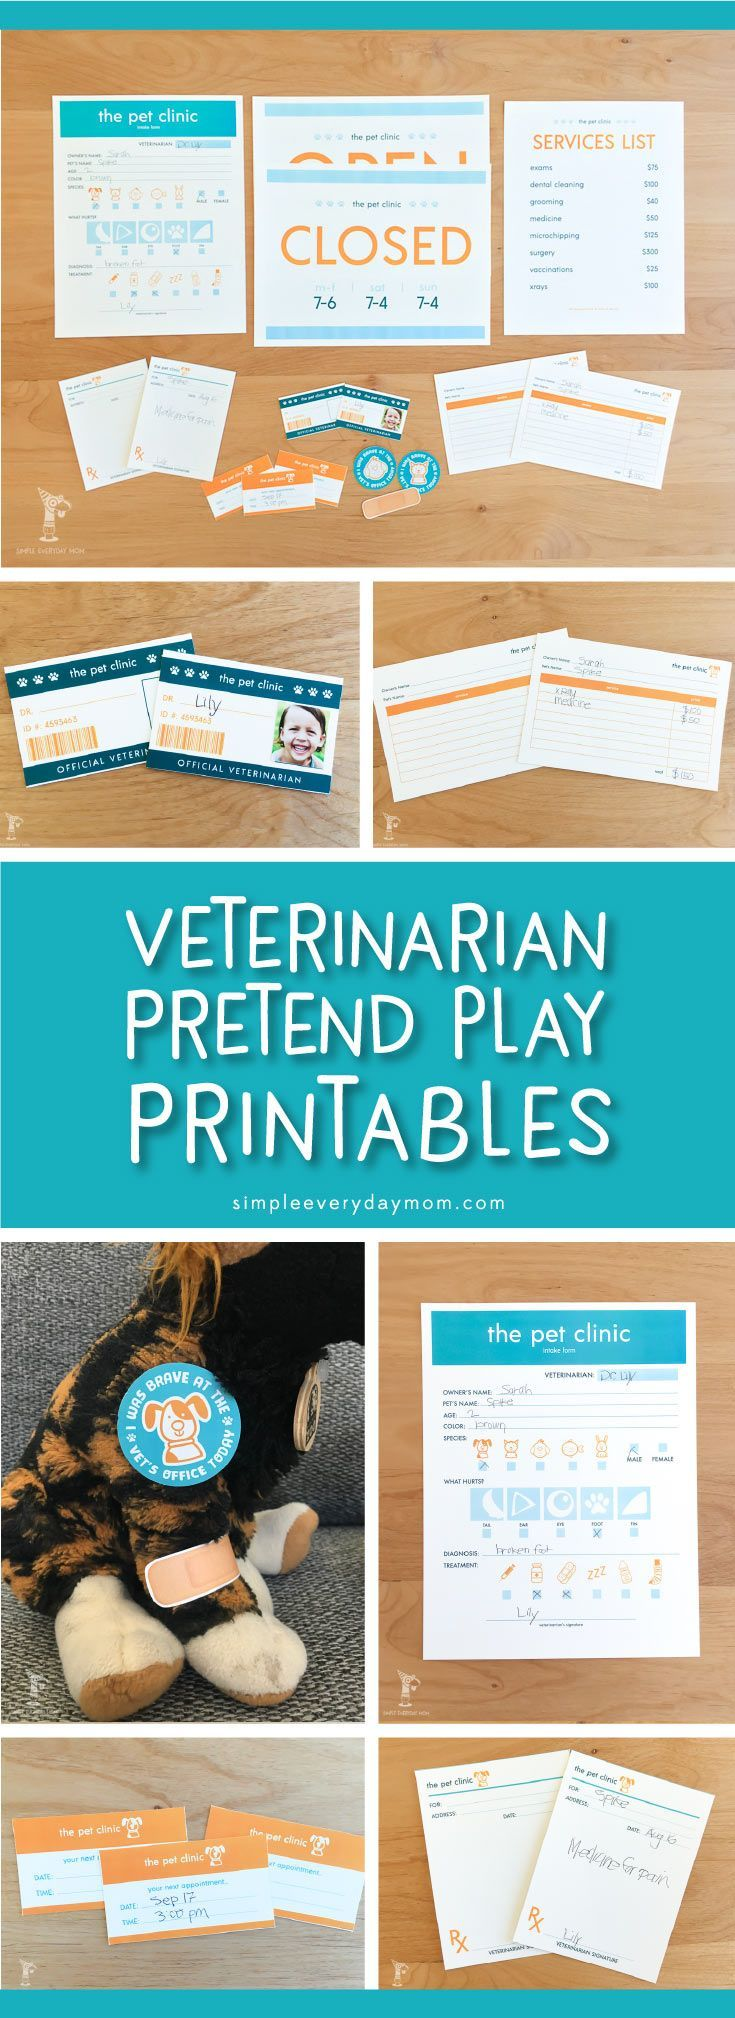 223 best Printables for Kids images on Pinterest | Baby snacks, Bees ...